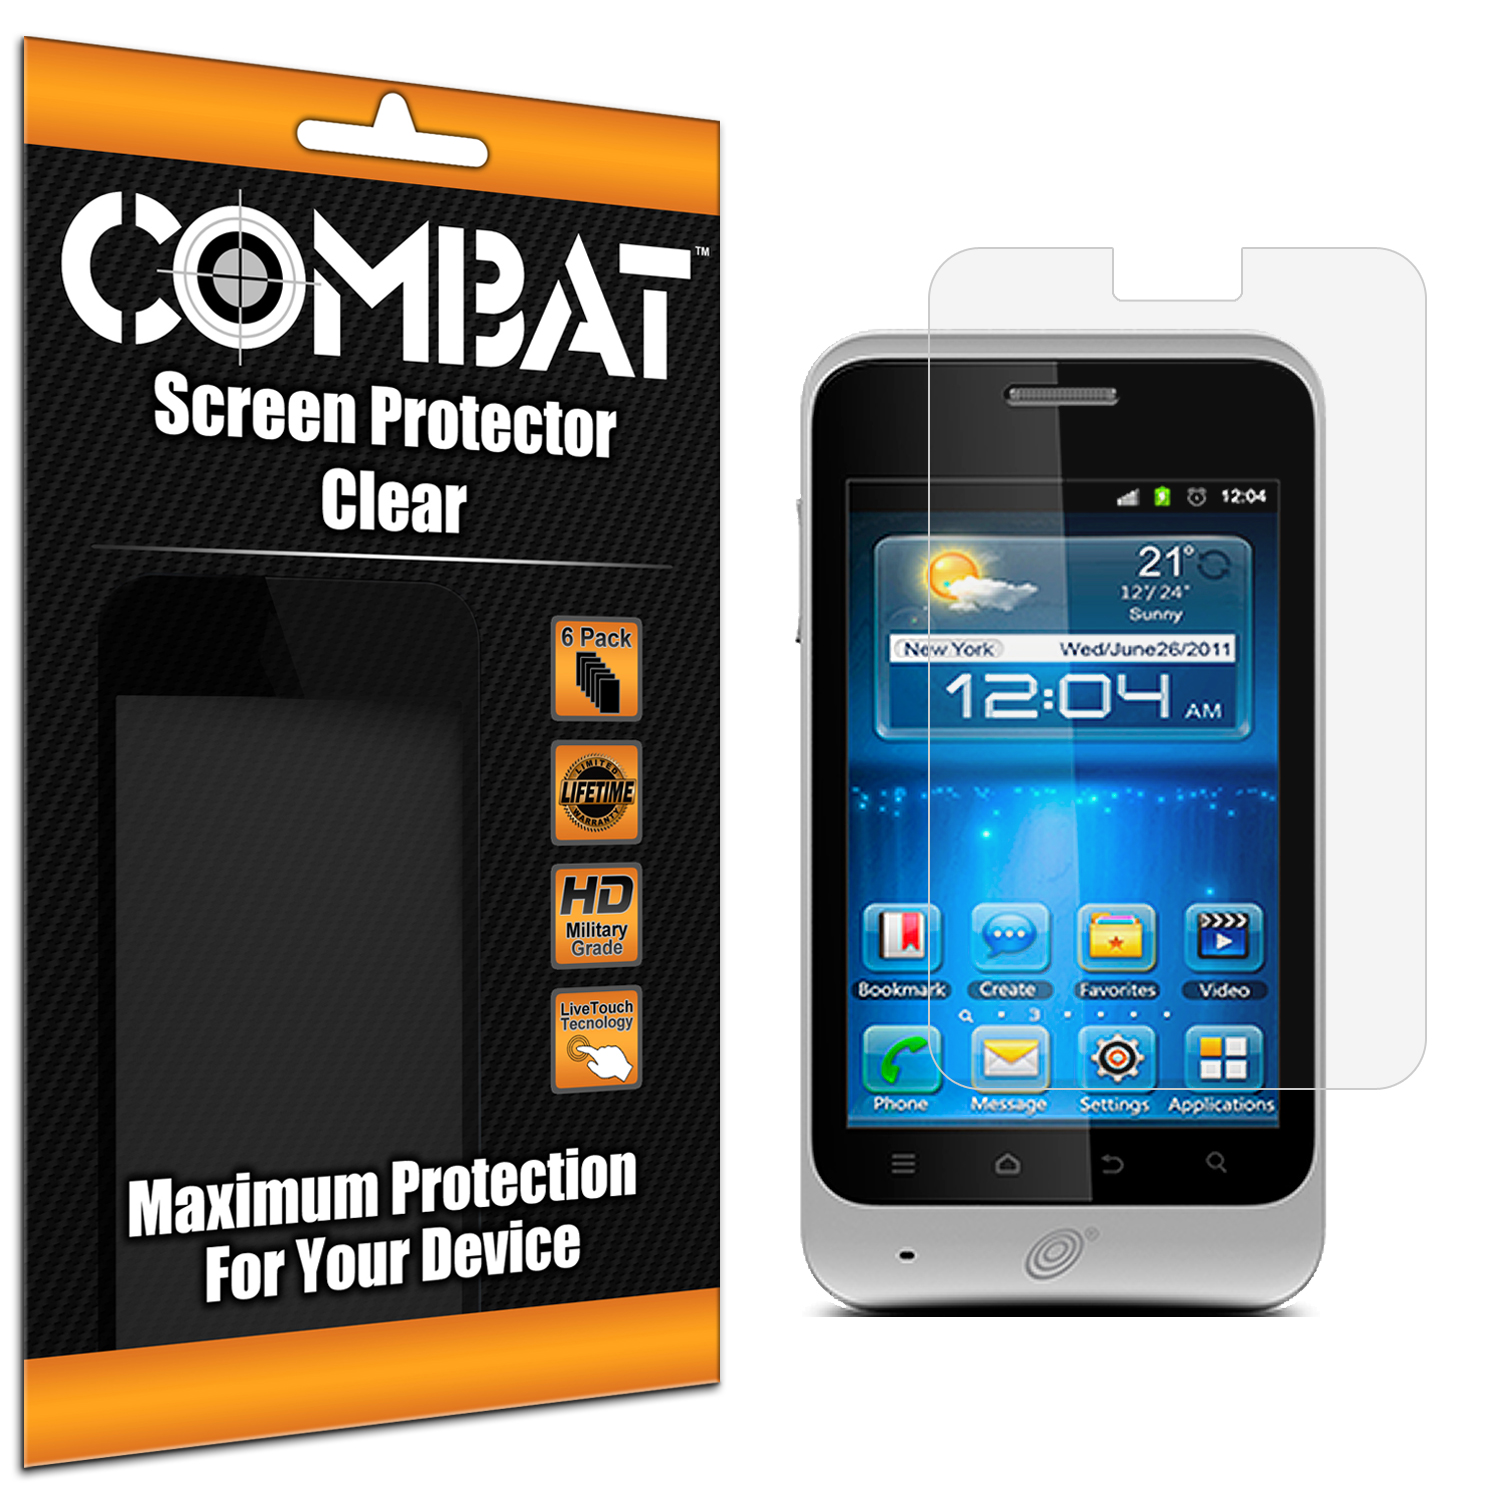 ZTE Illustra Z788G Combat 6 Pack HD Clear Screen Protector